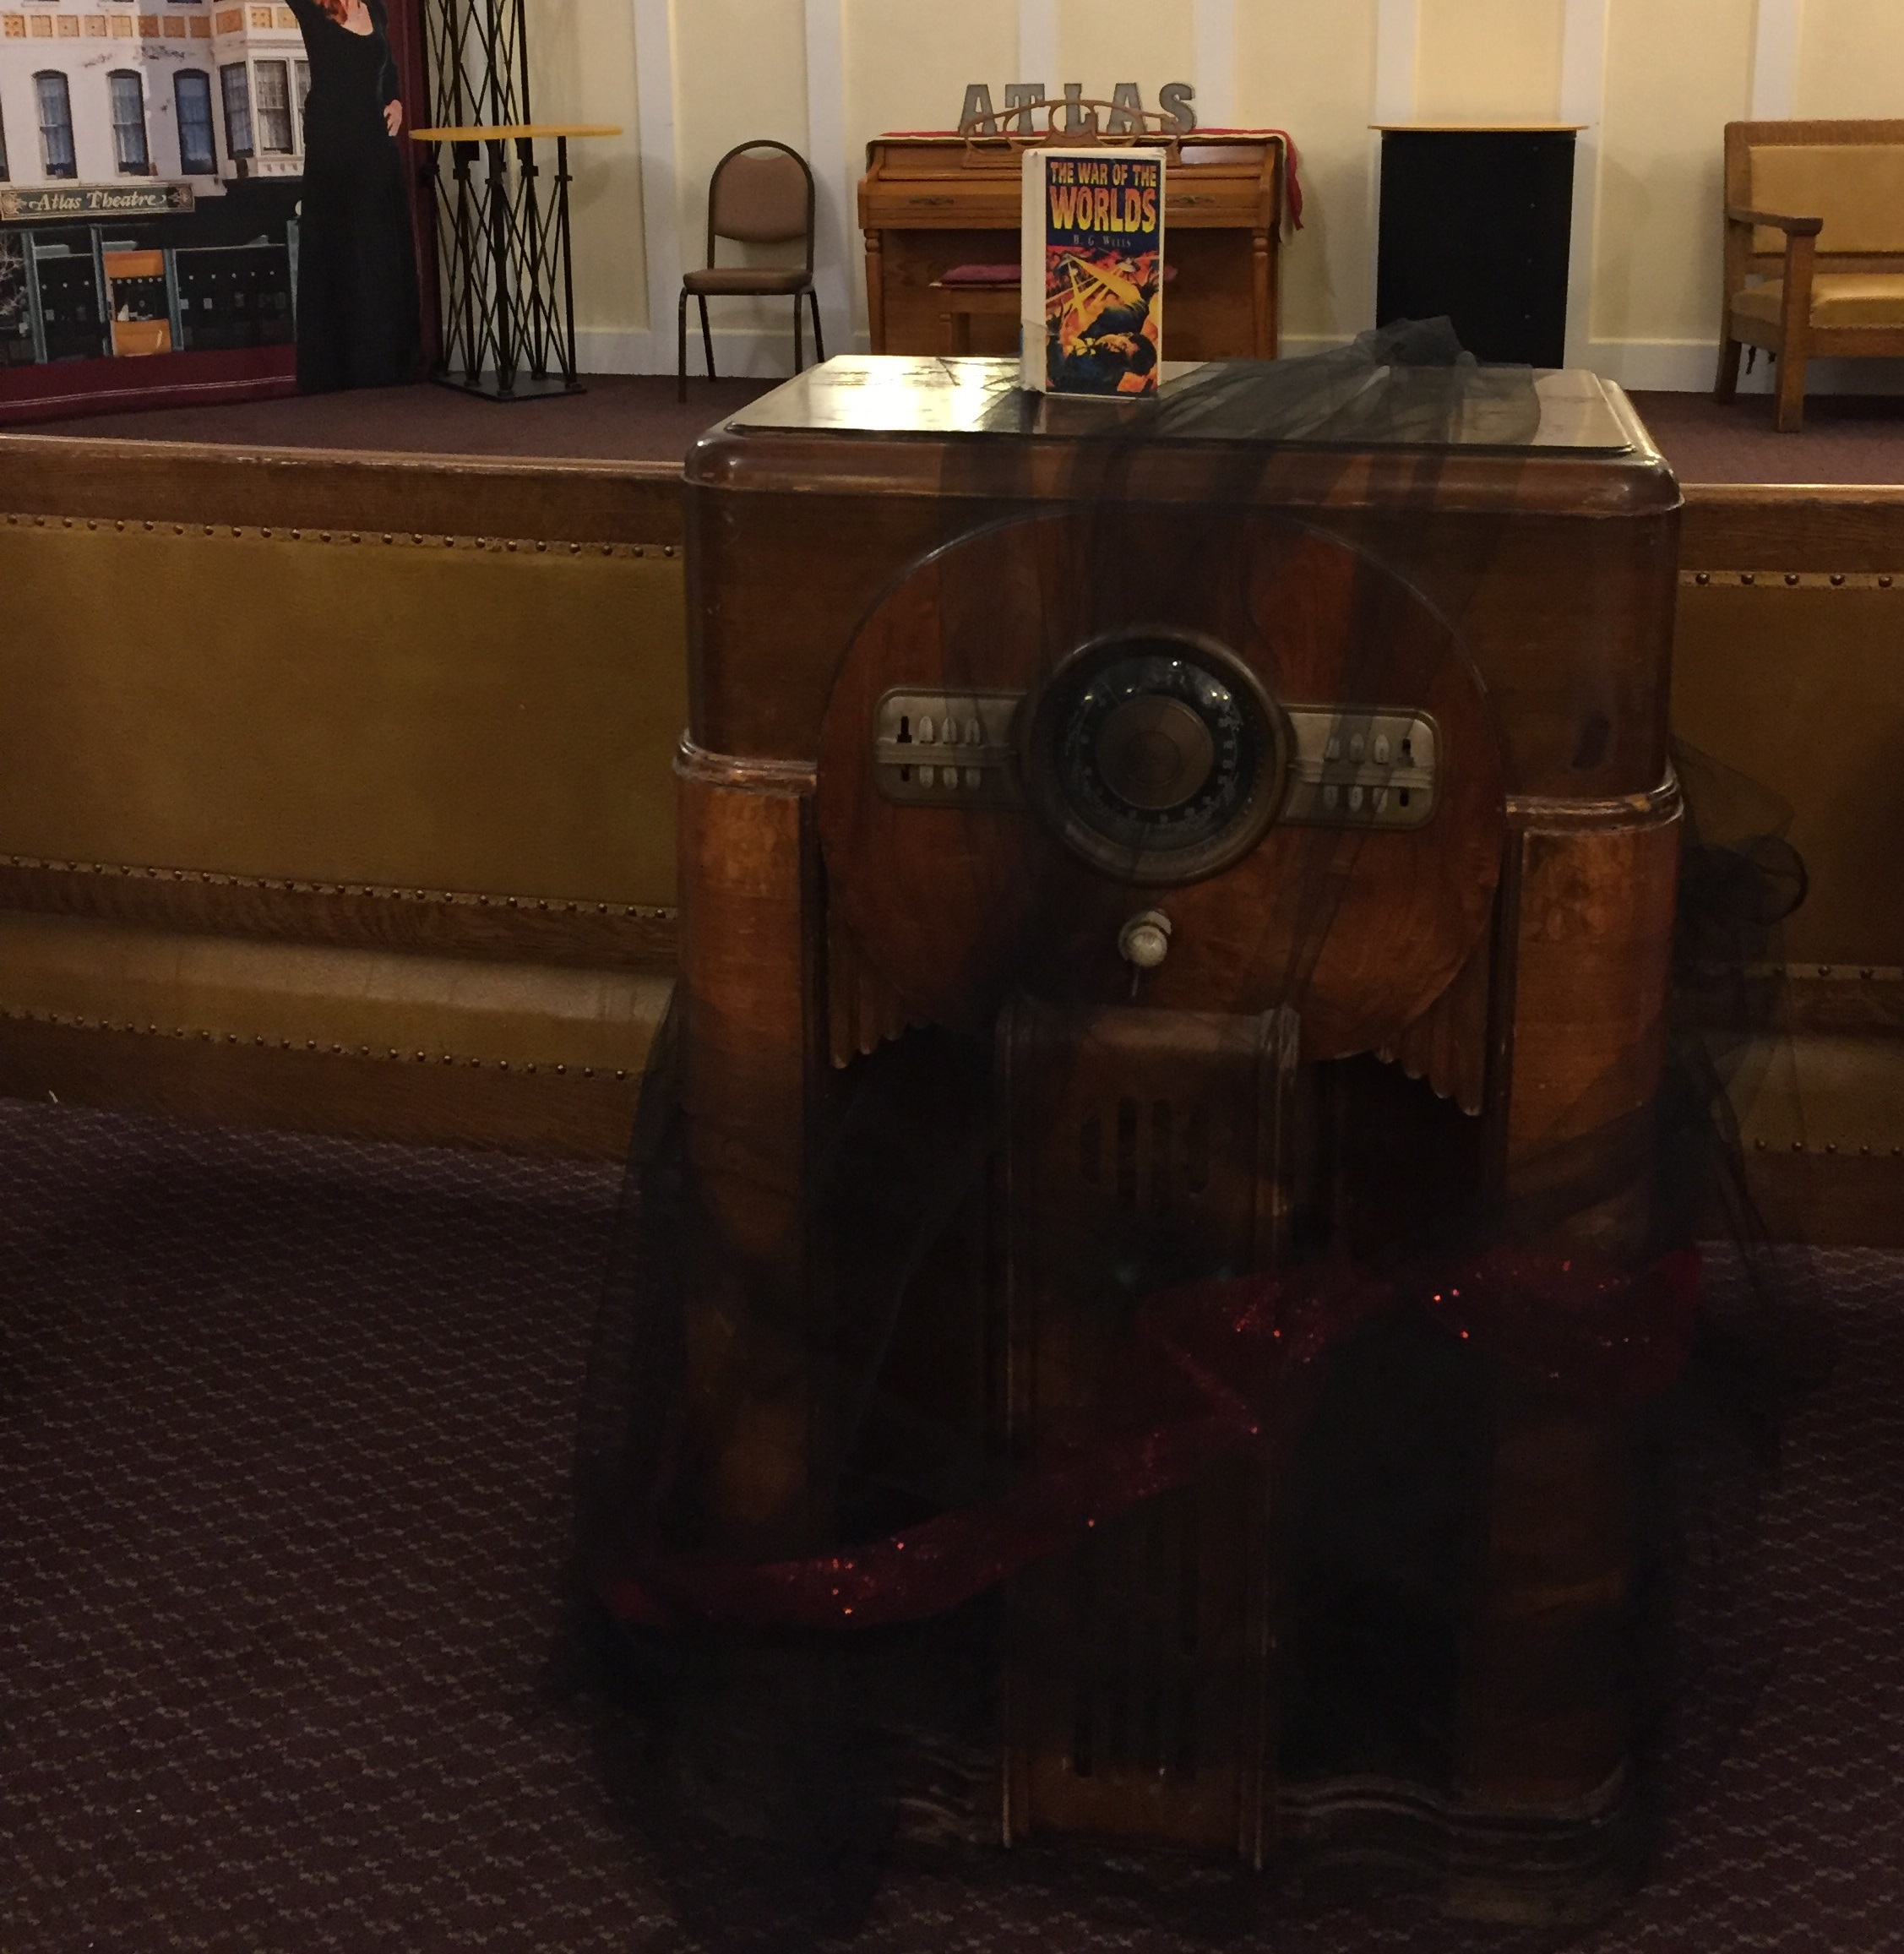 A 1938-era radio in the lobby of the Atlas Theatre